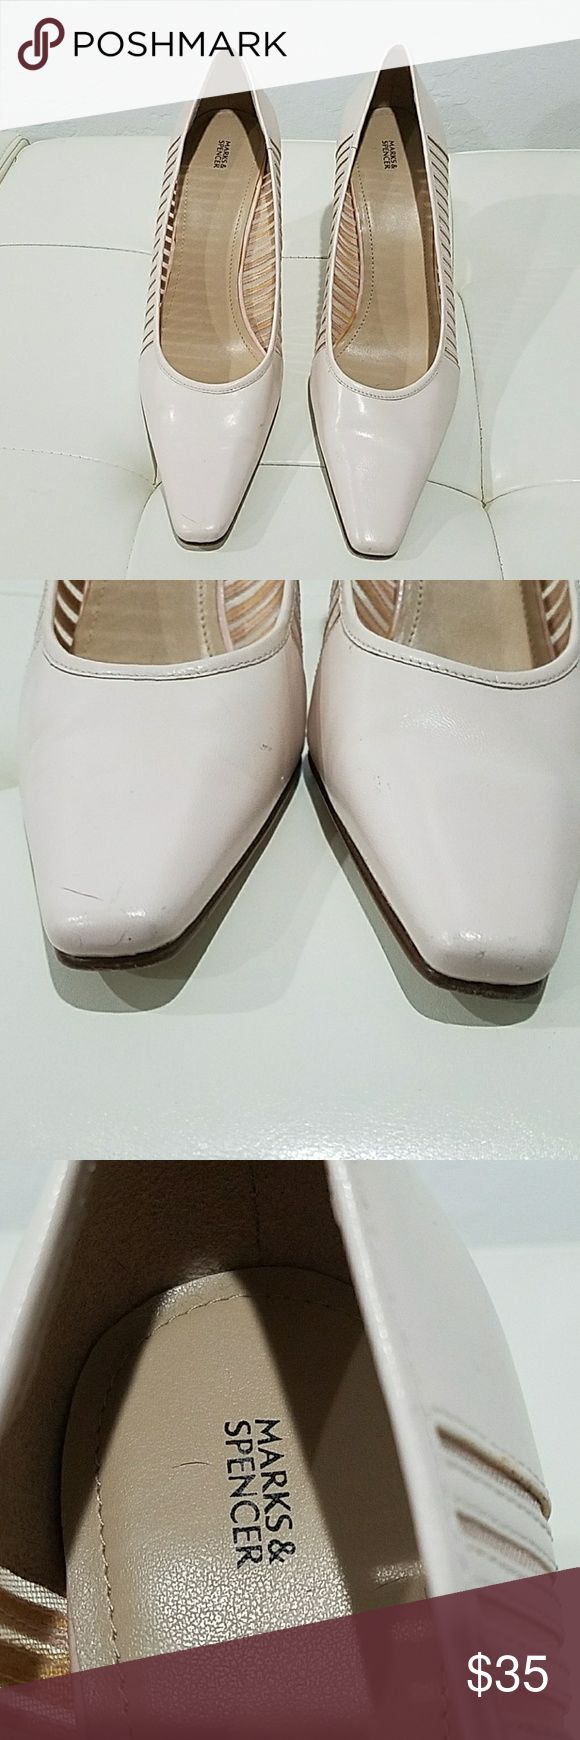 Marks & Spencer Classic Ivory Heel Great for the office, this cream heel looks fantastic on, does have a bit of a light  smudge on the side will have to look close to see it, size 39, fits 8 and 1/2 to 9, tiny squeek in heel Marks & Spencer Shoes Heels